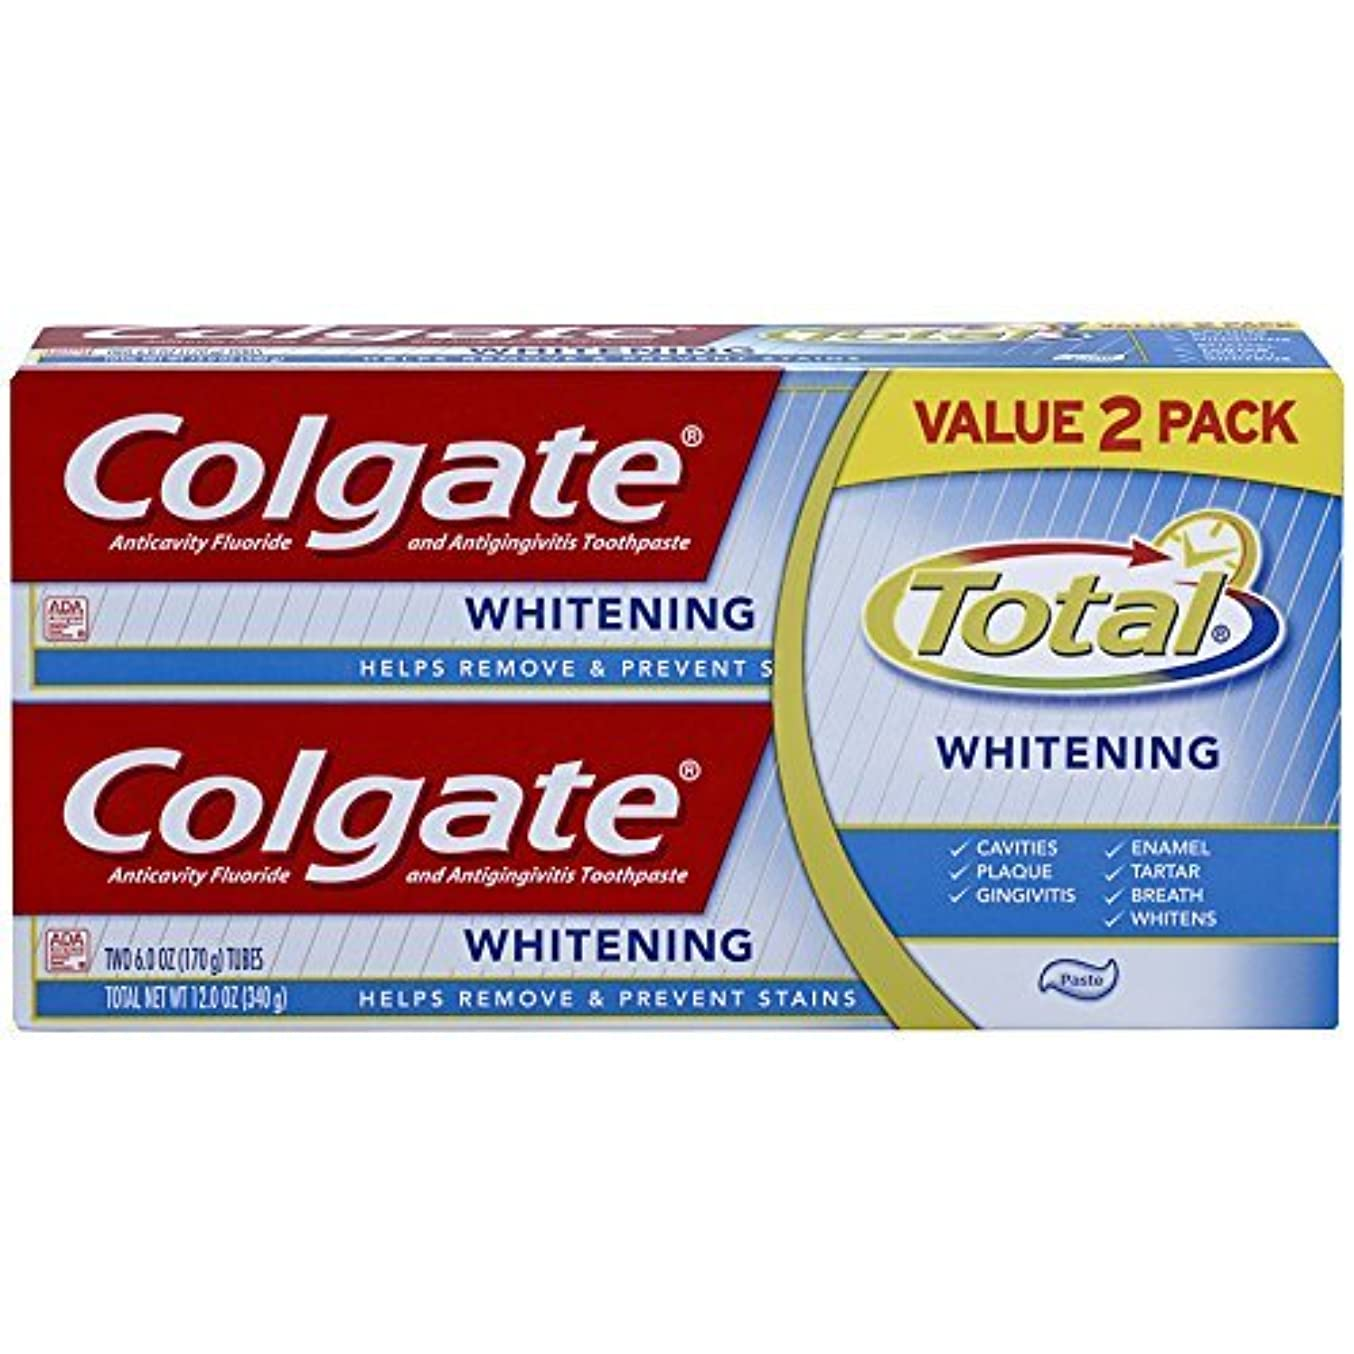 くすぐったい贅沢な元のColgate Total Whitening Toothpaste Twin Pack - 6 ounce [並行輸入品]